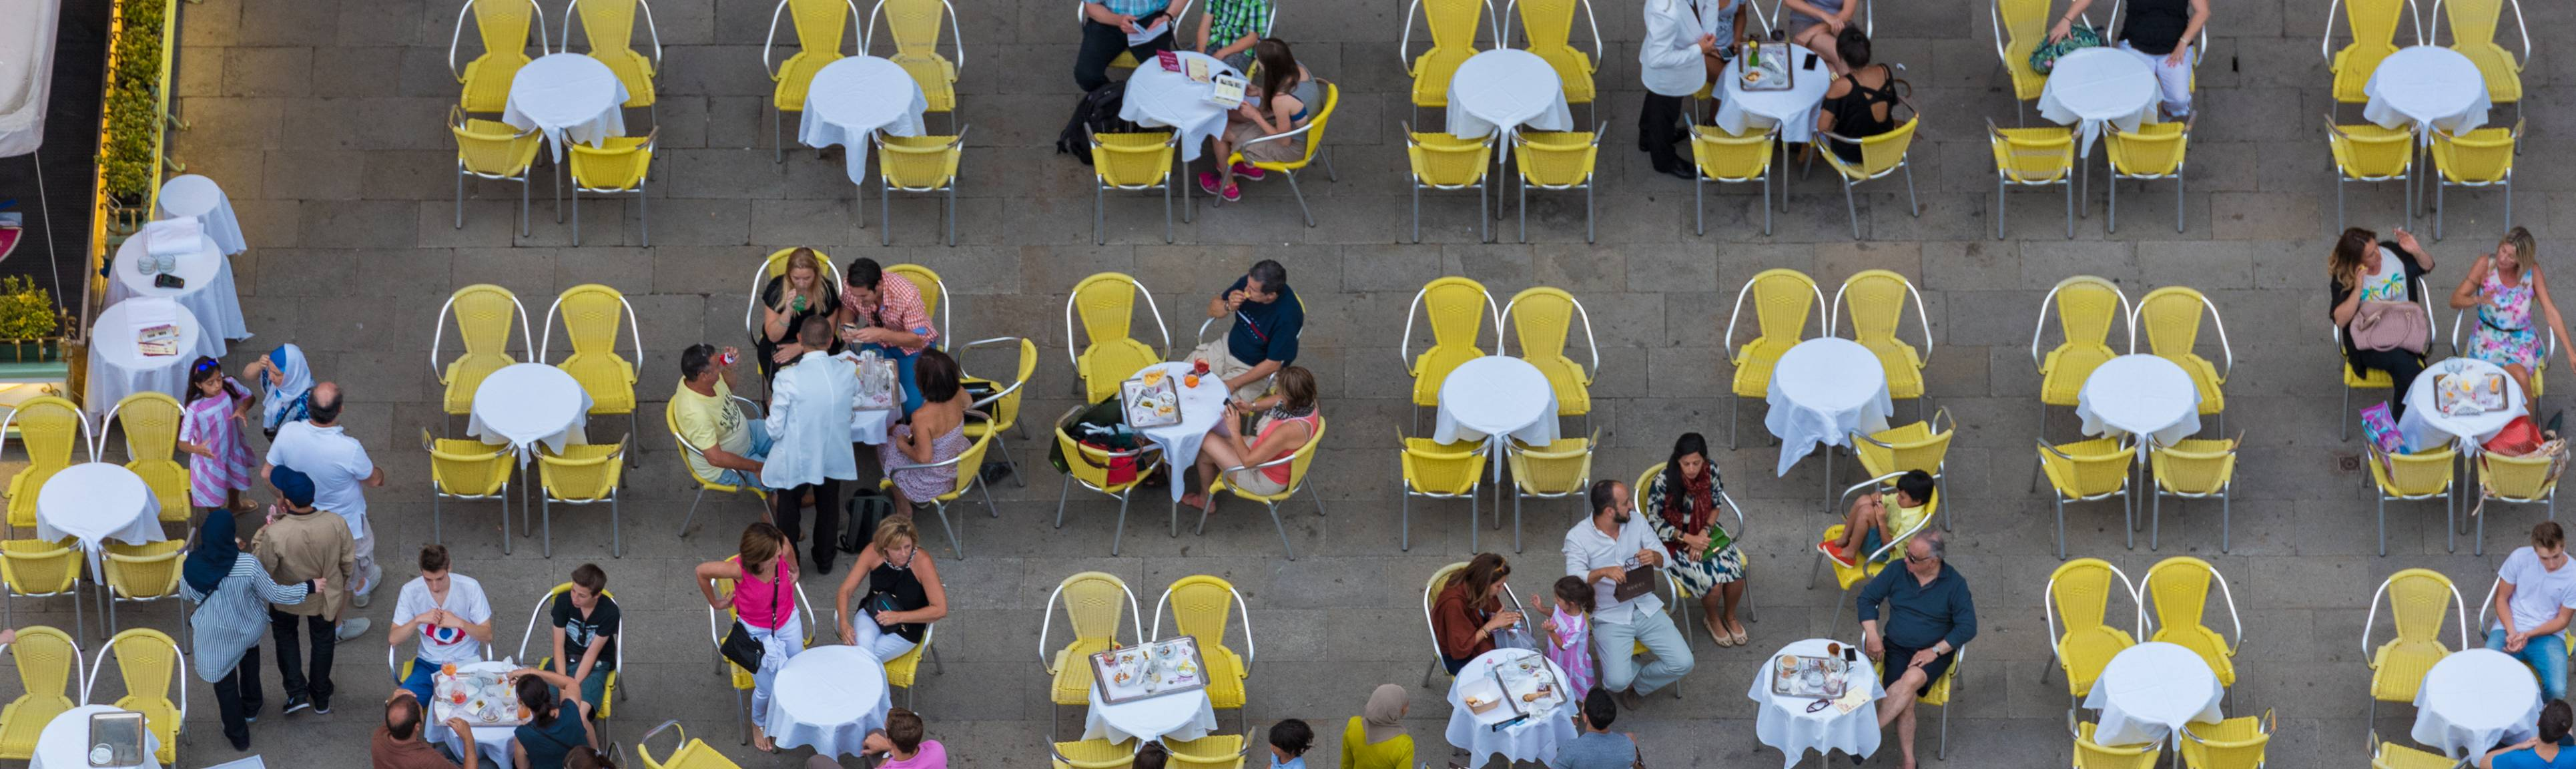 Bird's eye view of people sitting at small tables in a Piazza